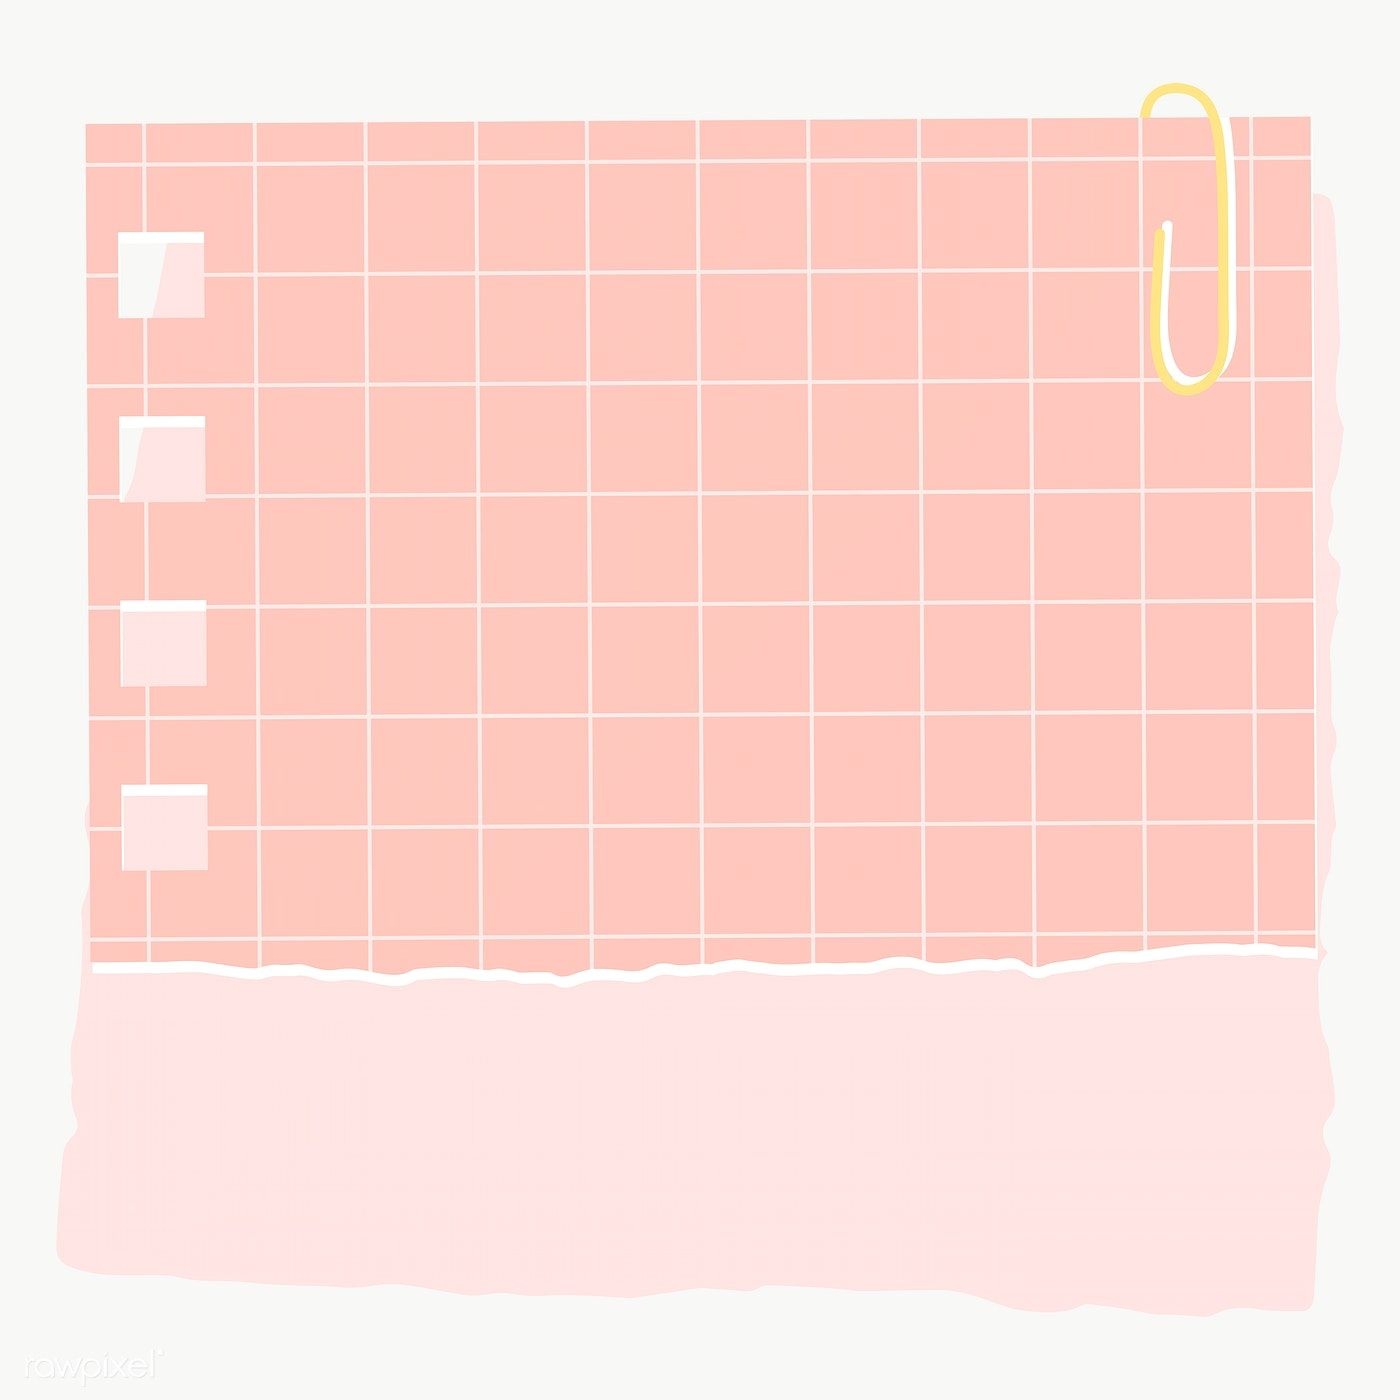 Pink Square Paper Note Social Ads Template Transparent Png Free Image By Rawpixel Com Manotang Note Paper Square Paper Paper Background Texture